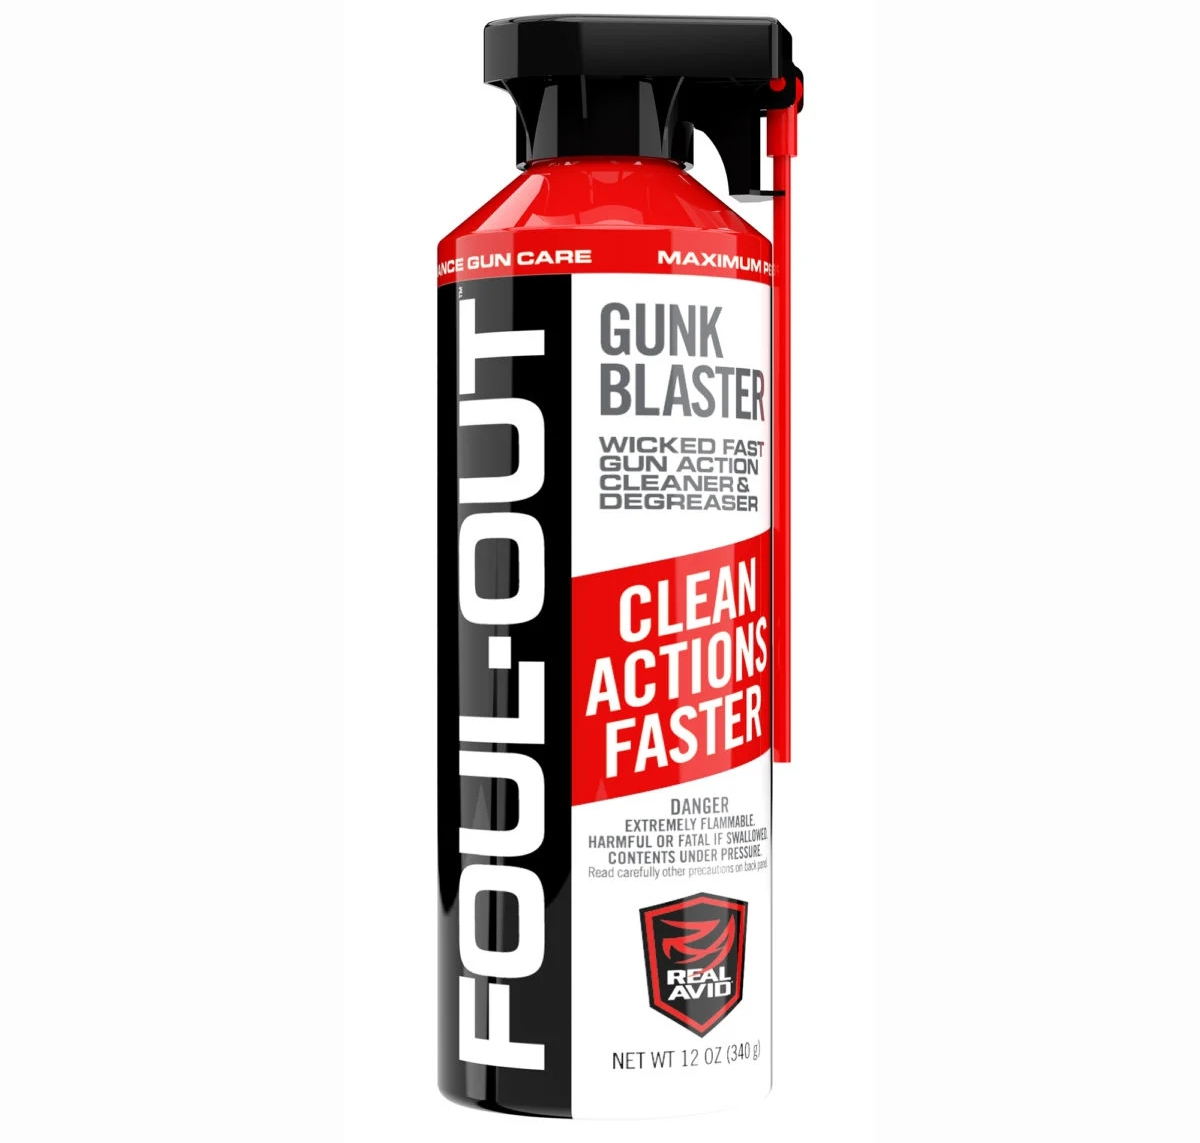 Introducing Foul-Out Gunk Blaster Cleaner/Degreaser from Real Avid